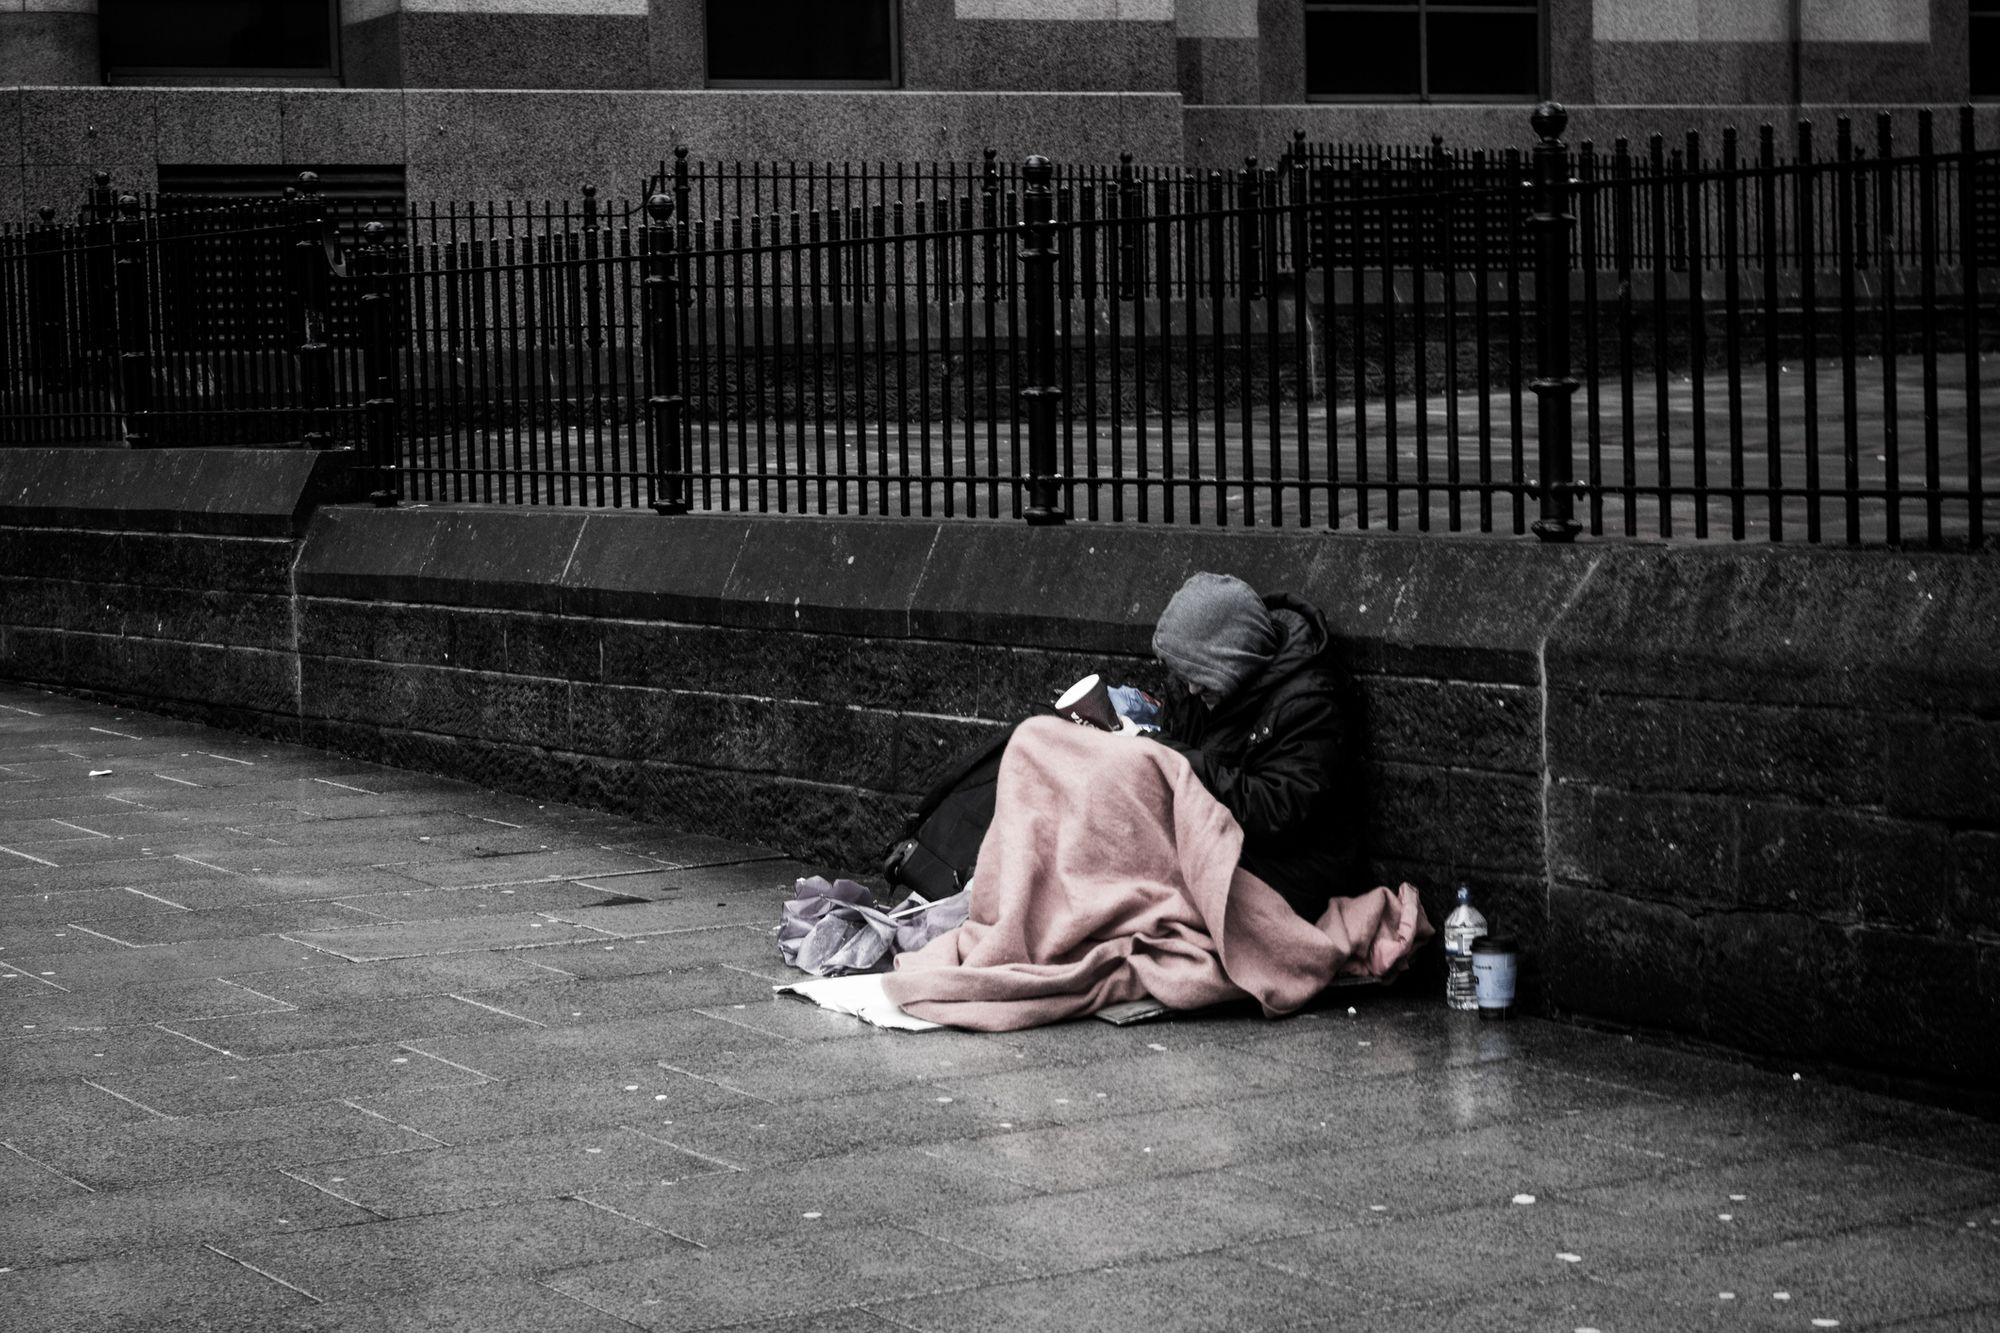 England - Homeless charities benefit from over £850,000 donated by Freemasons